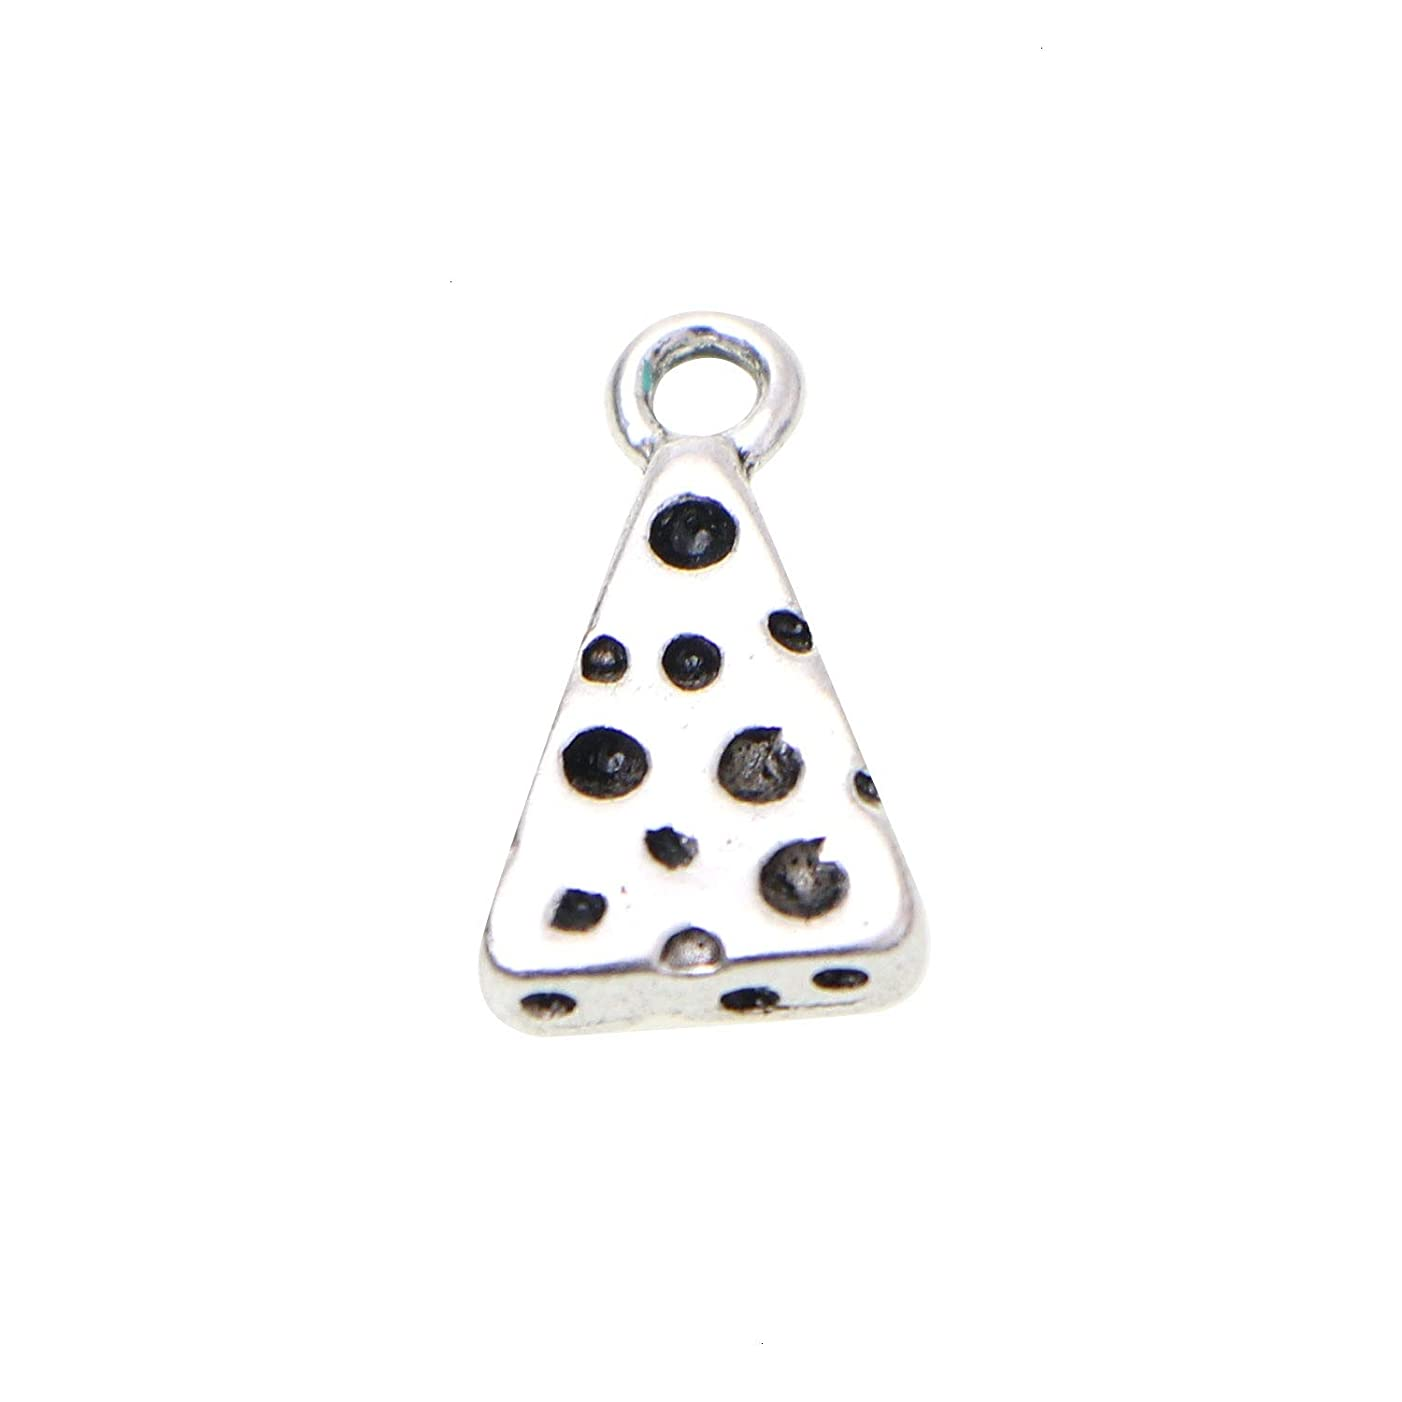 Monrocco 20Pcs Swiss Cheese Charm Swiss Cheese Charms Pendants for Jewelry Making Bracelet Necklace